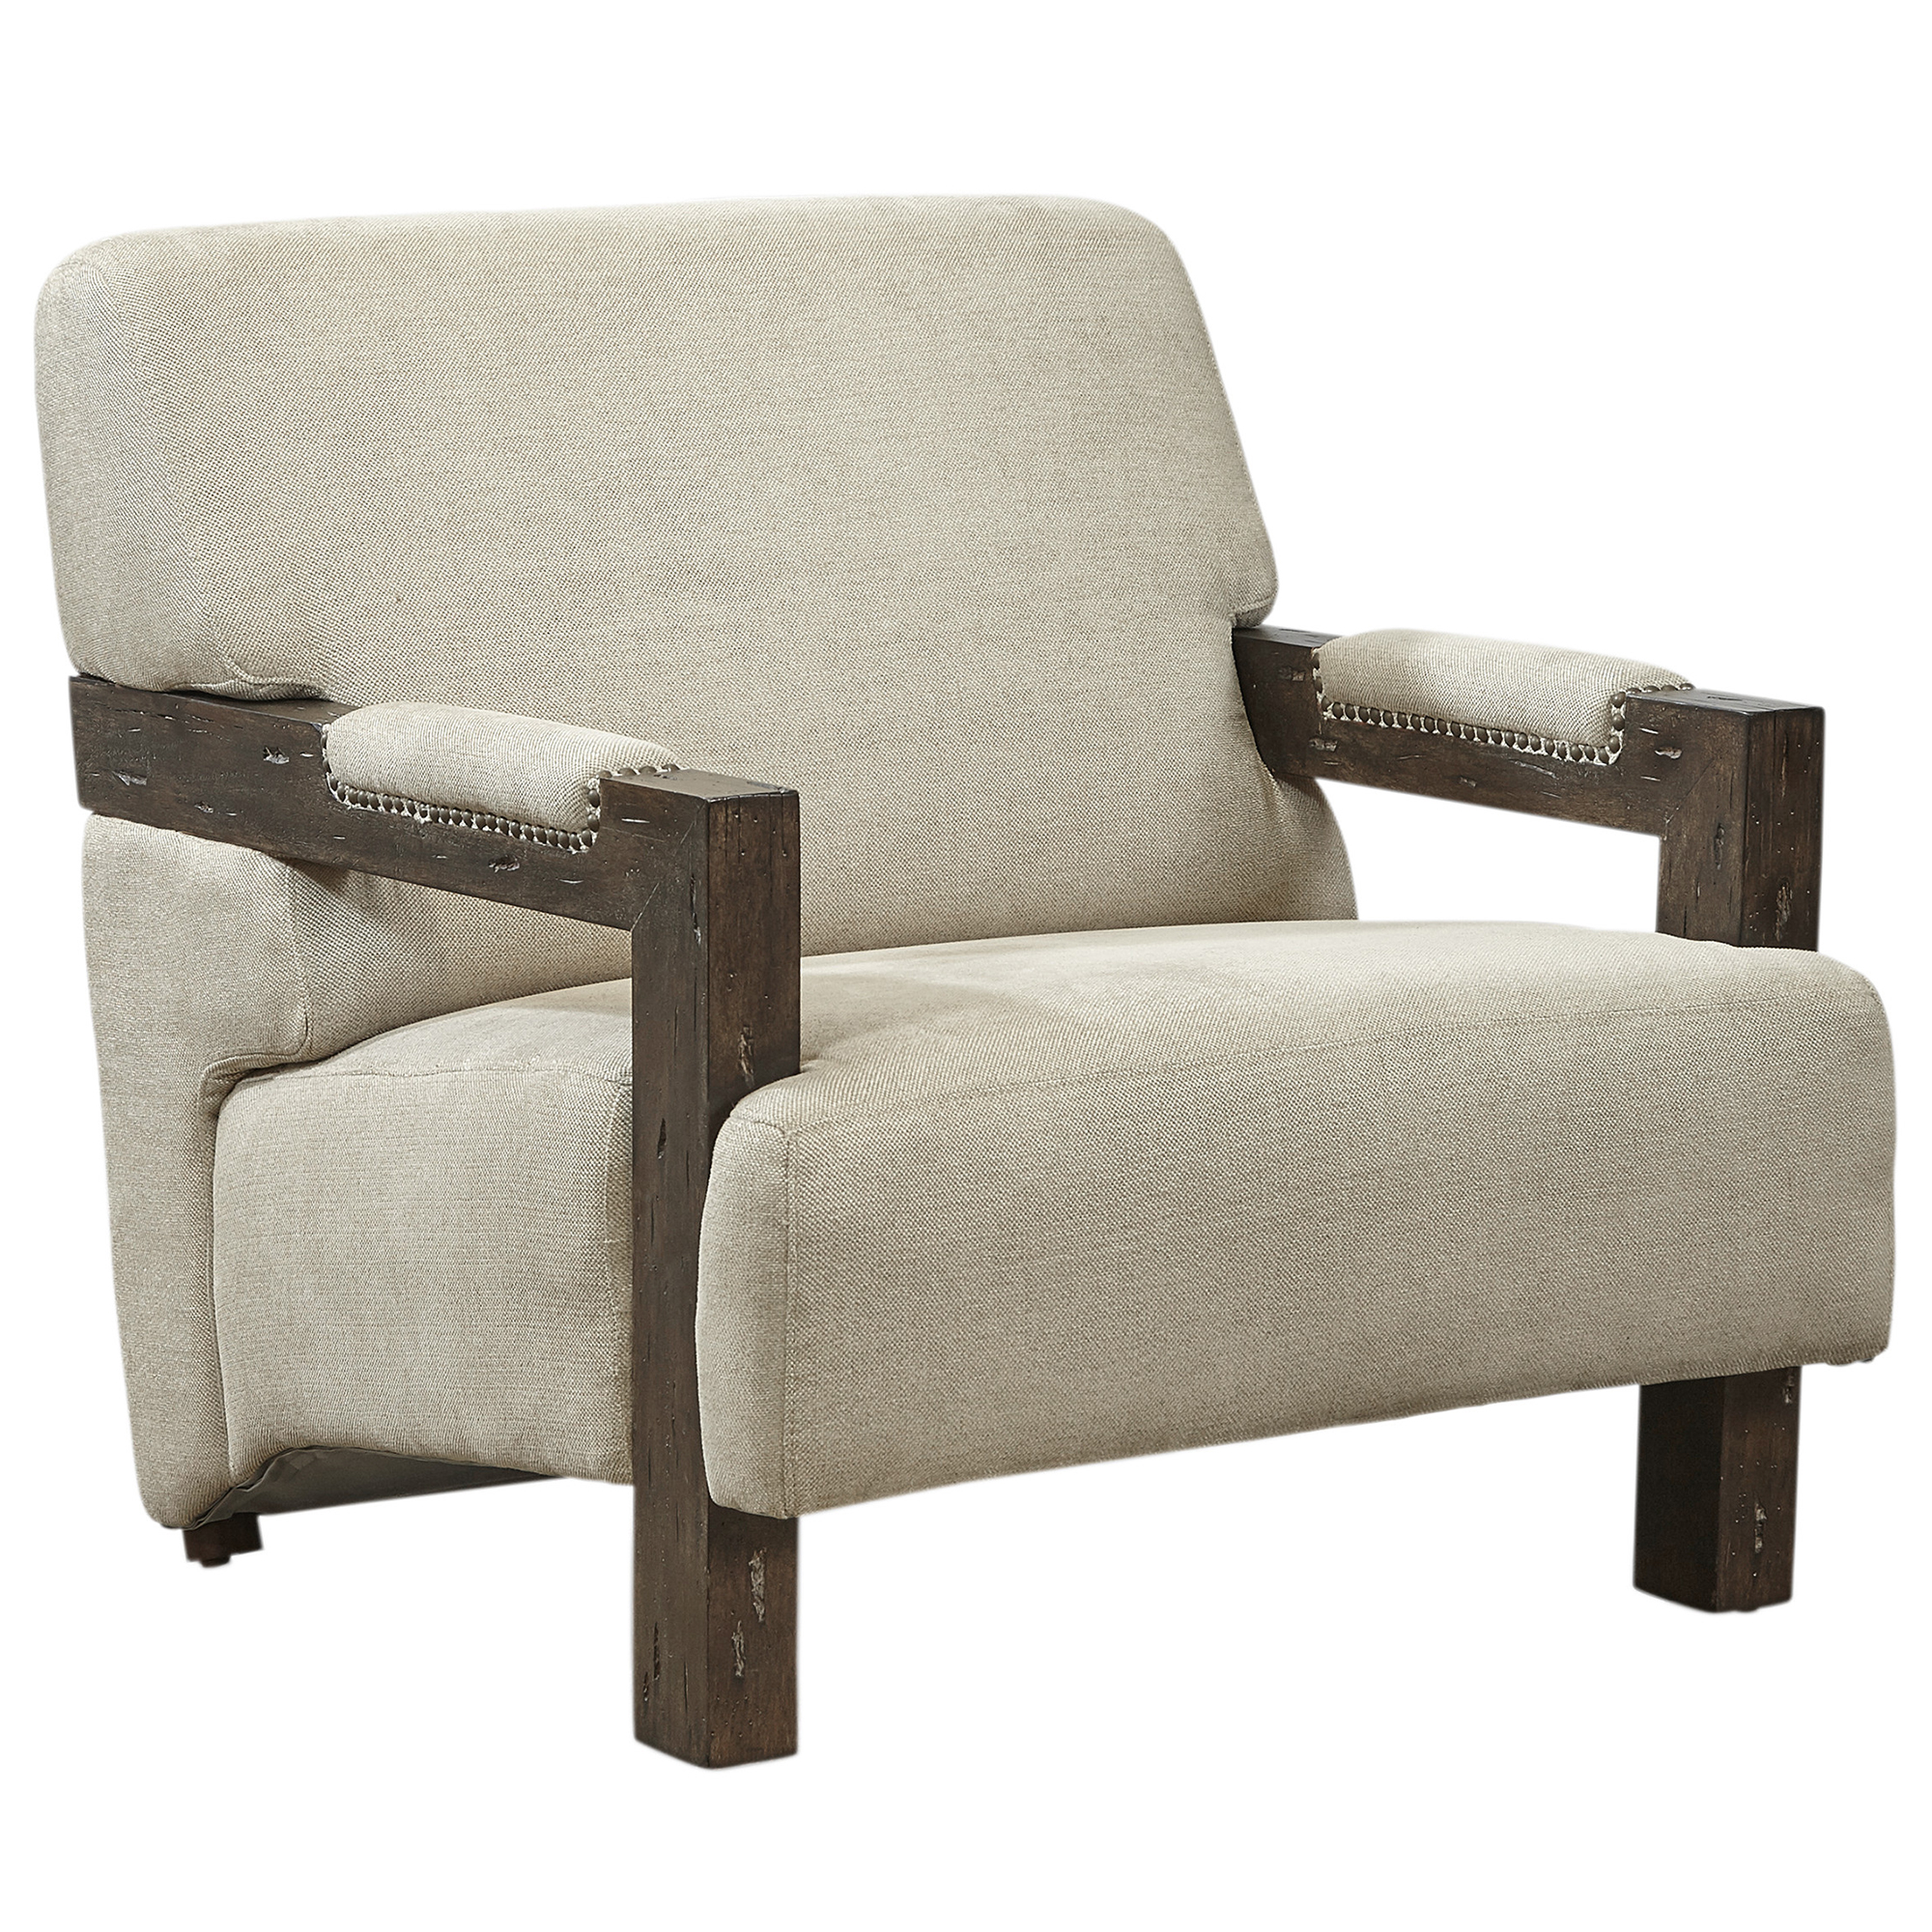 Miraculous Berkley Ii Arm Chair In Creme Fabric W Wood Arms By Lazzaro Furniture Theyellowbook Wood Chair Design Ideas Theyellowbookinfo